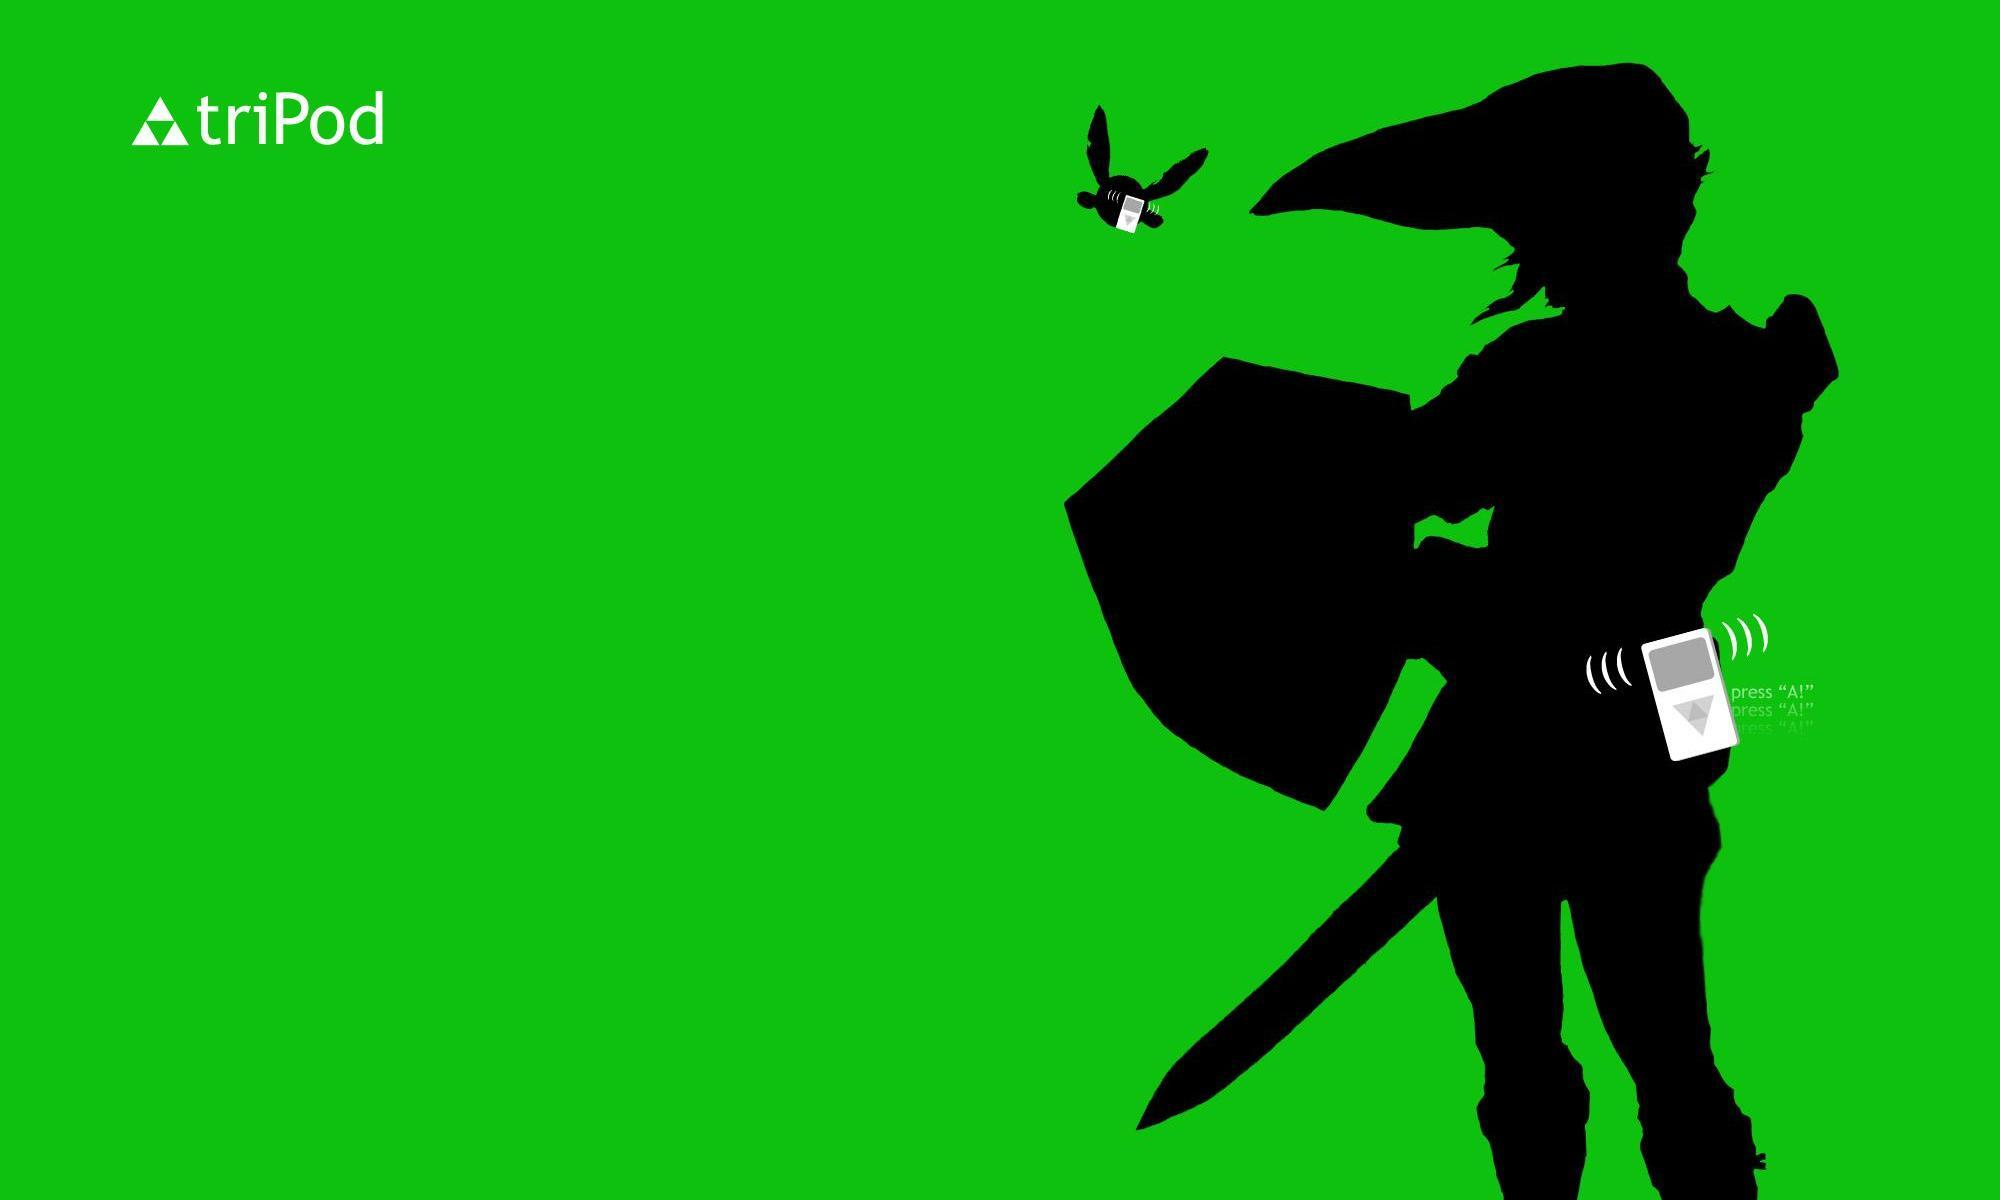 Green woman link silhouettes HD Wallpaper